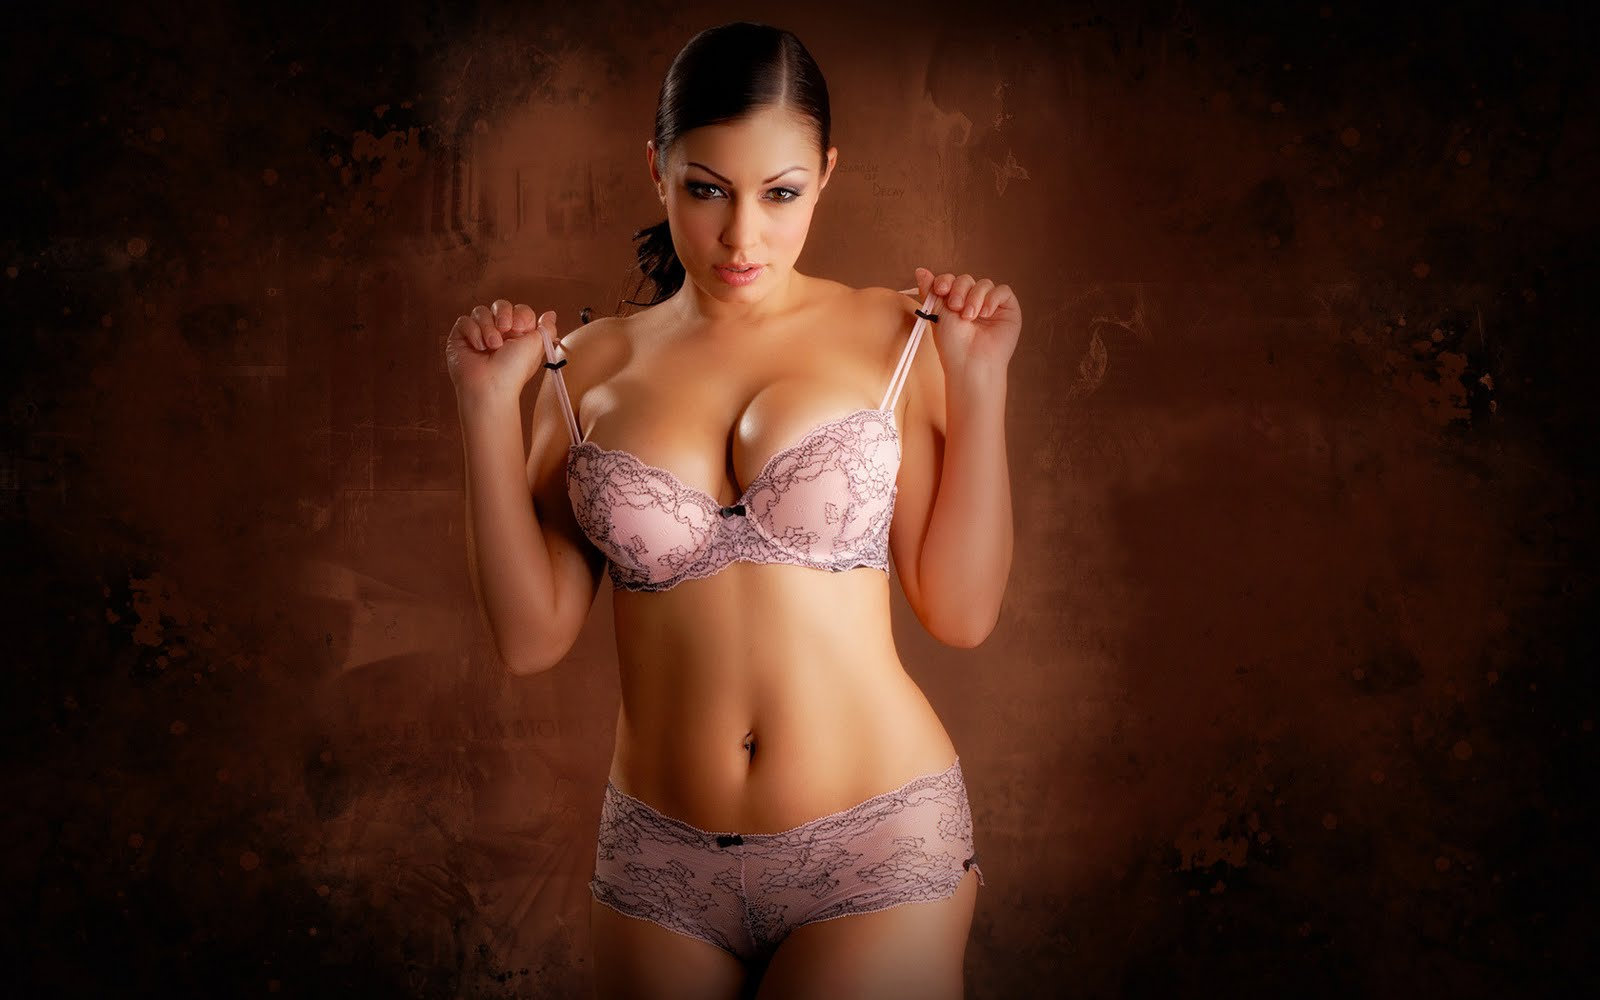 Aria Giovanni Hot HD Wallpaper | HD Wallpaper